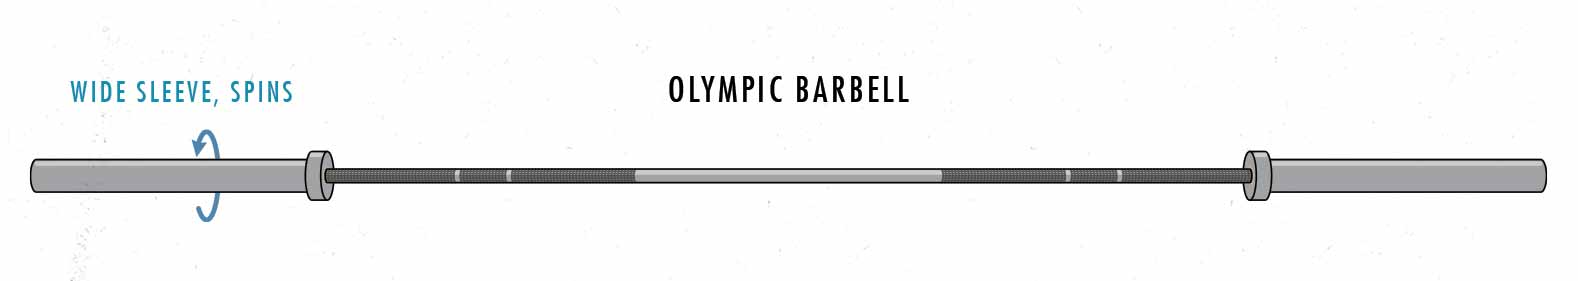 Illustration of an Olympic barbell with 2-inch revolving sleeves.